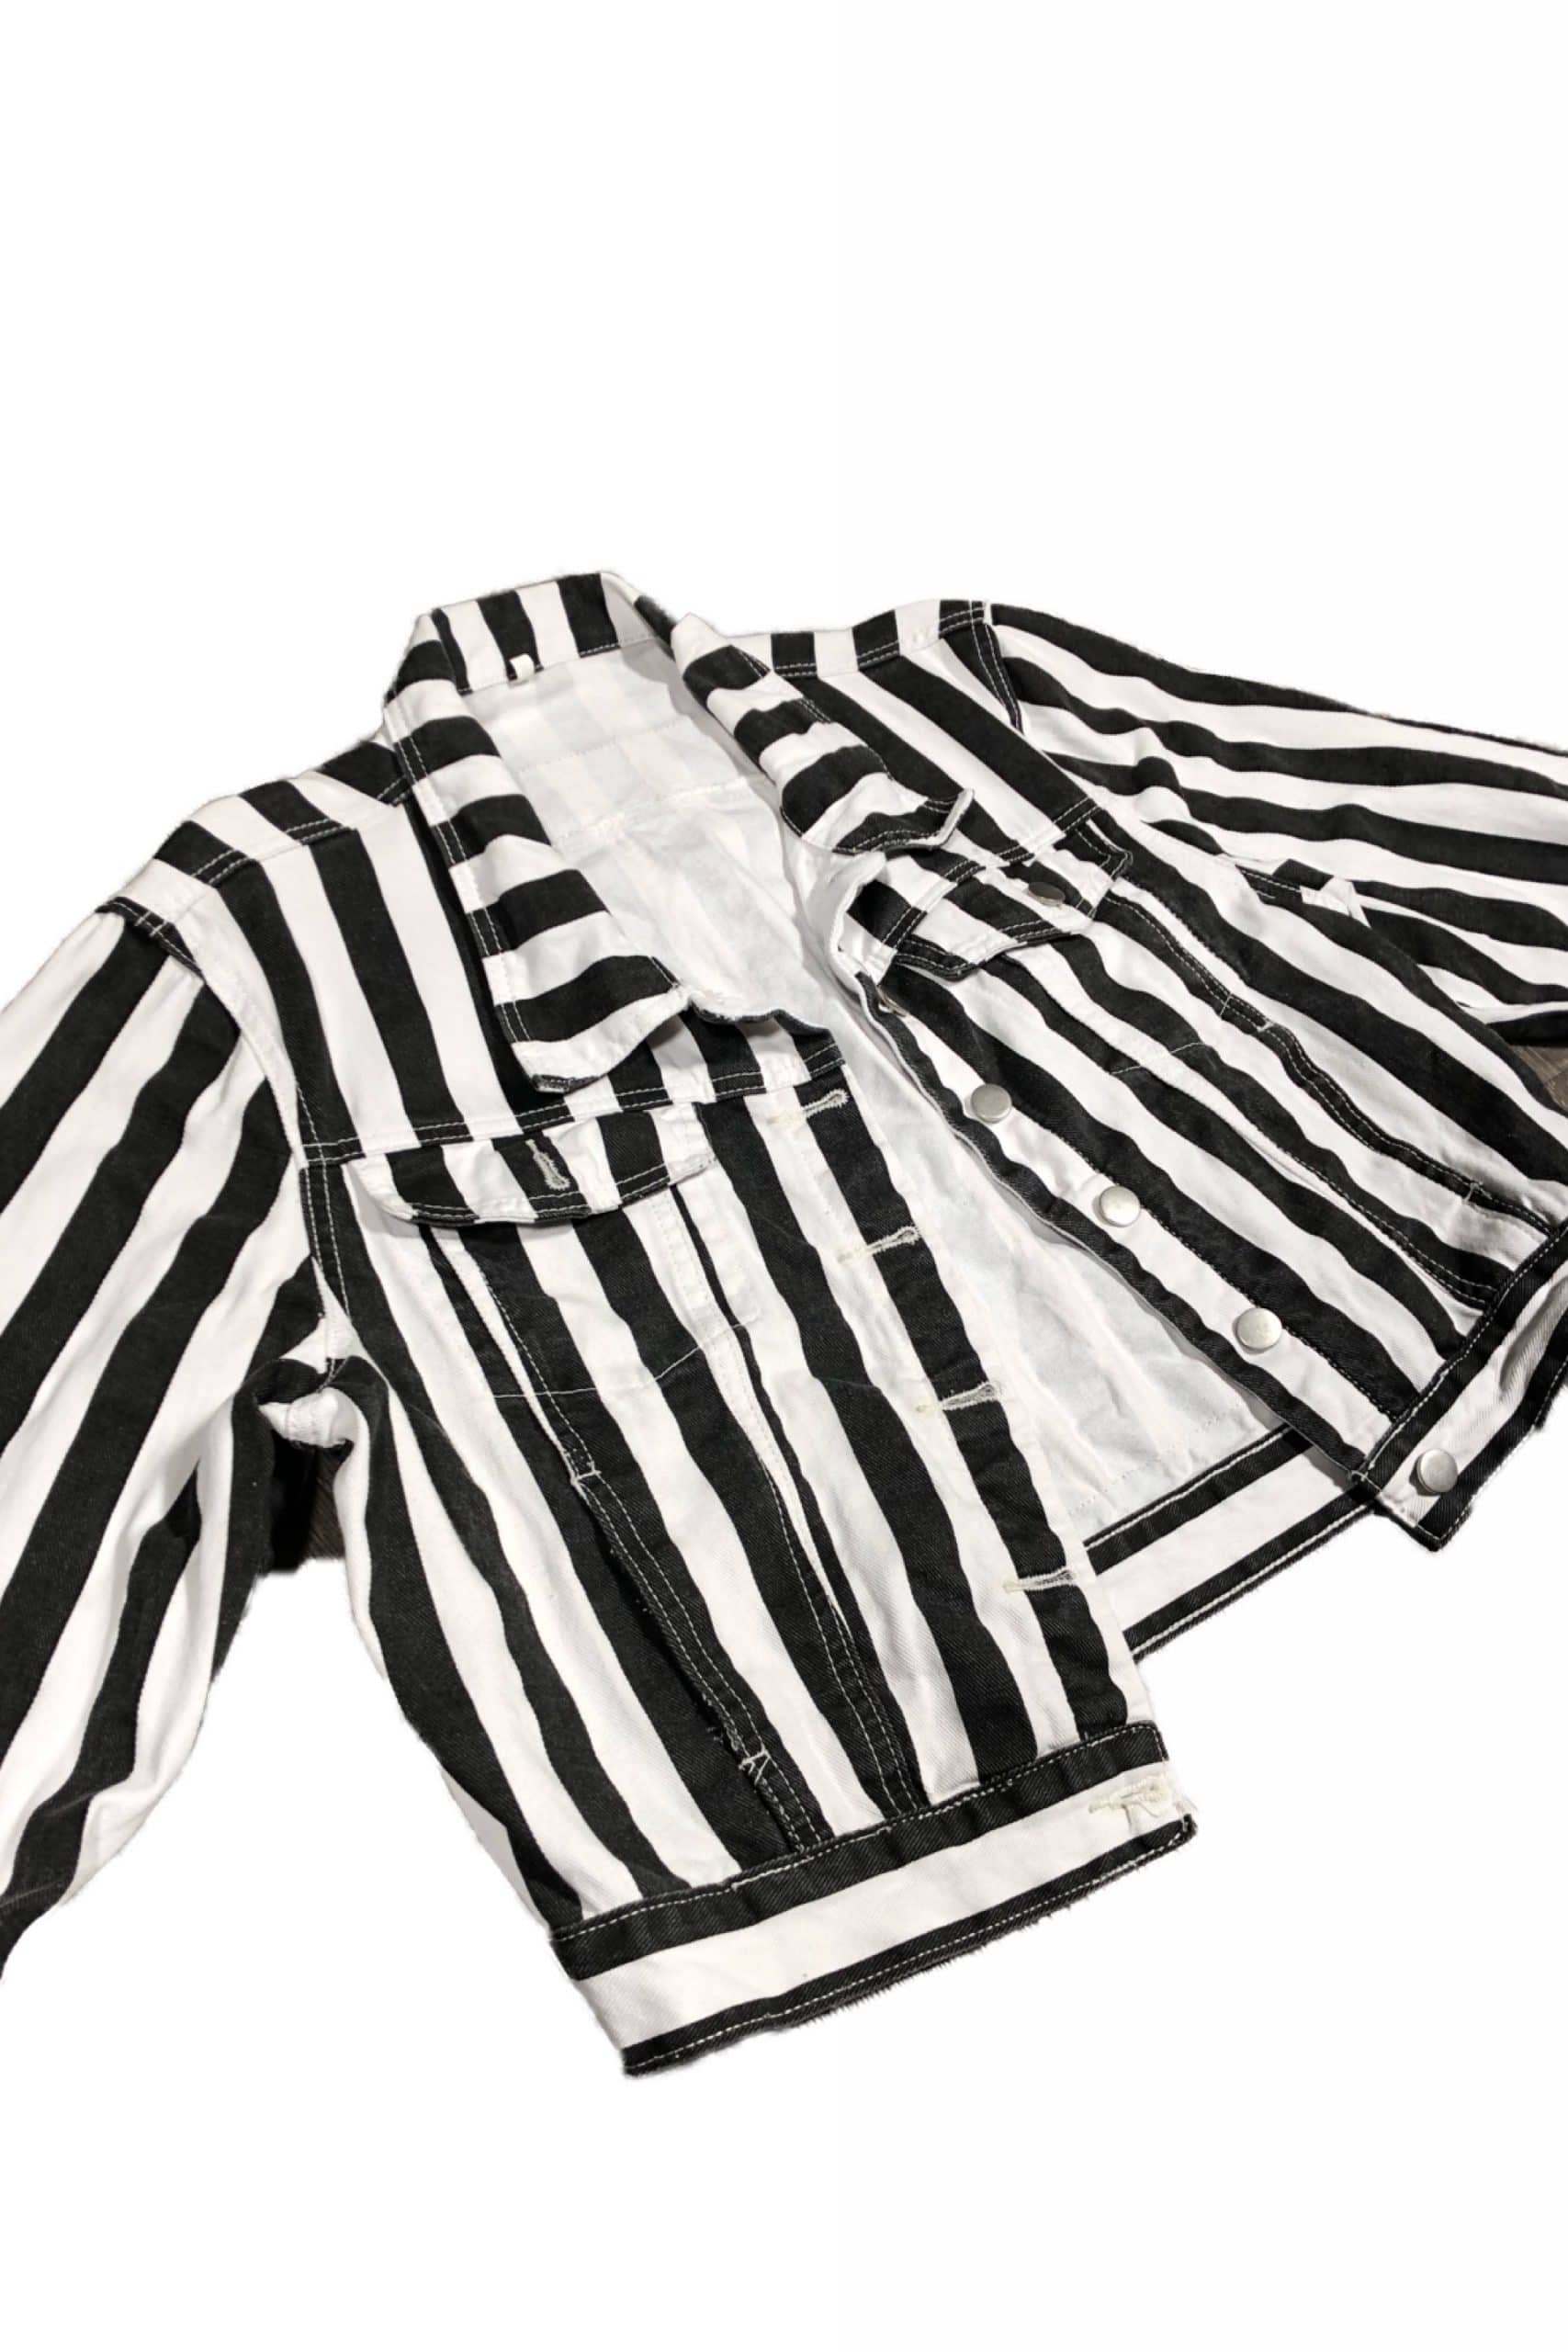 Black By Popular Demand® Women's Striped Jean Jacket HGC Apparel